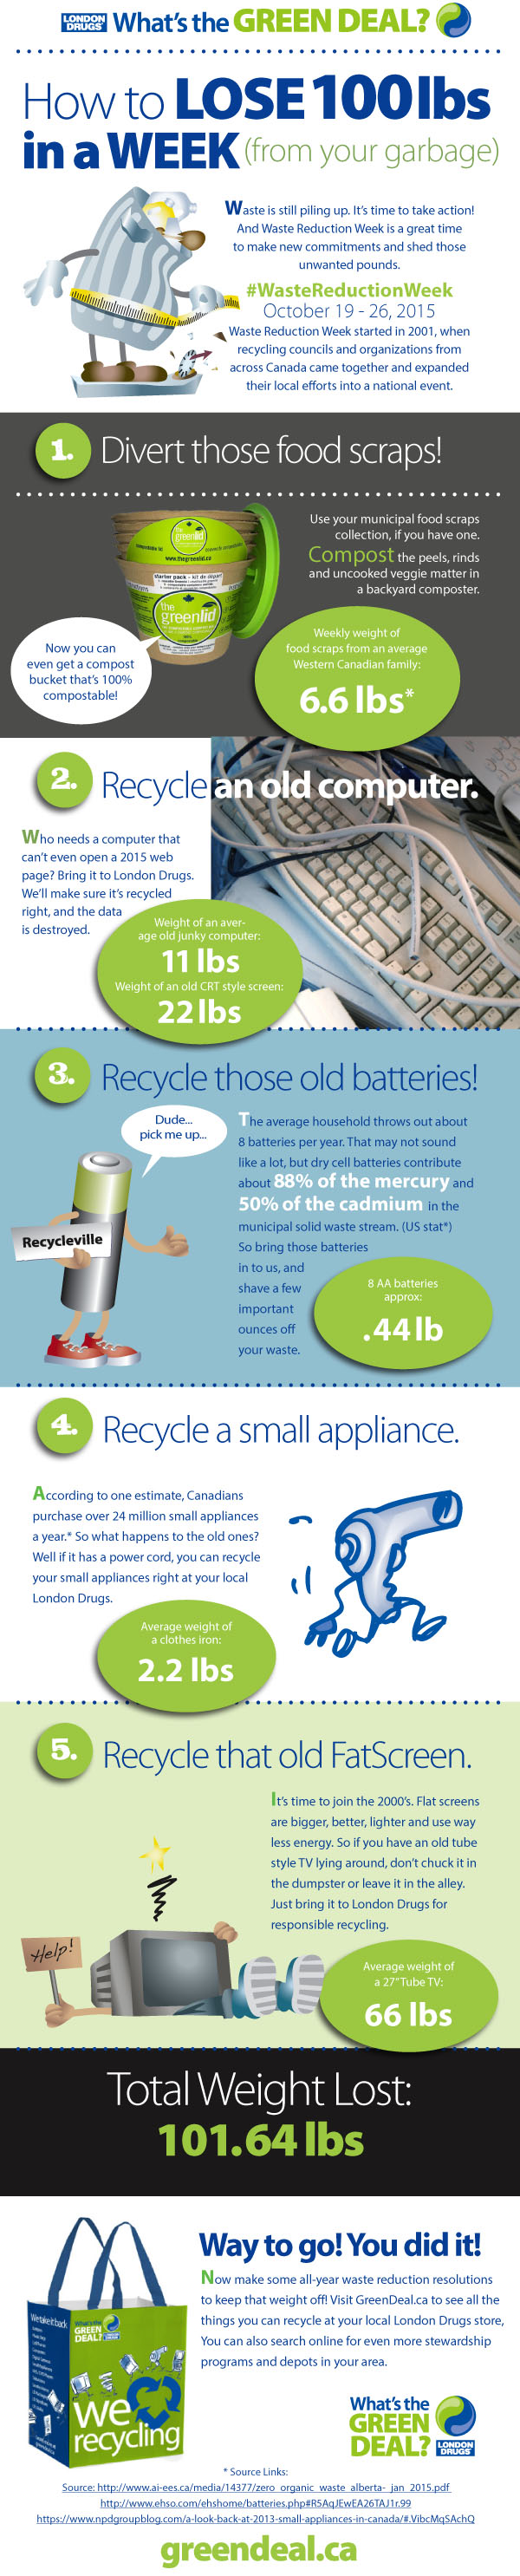 How to recycle electronics batteries and appliances at London Drugs